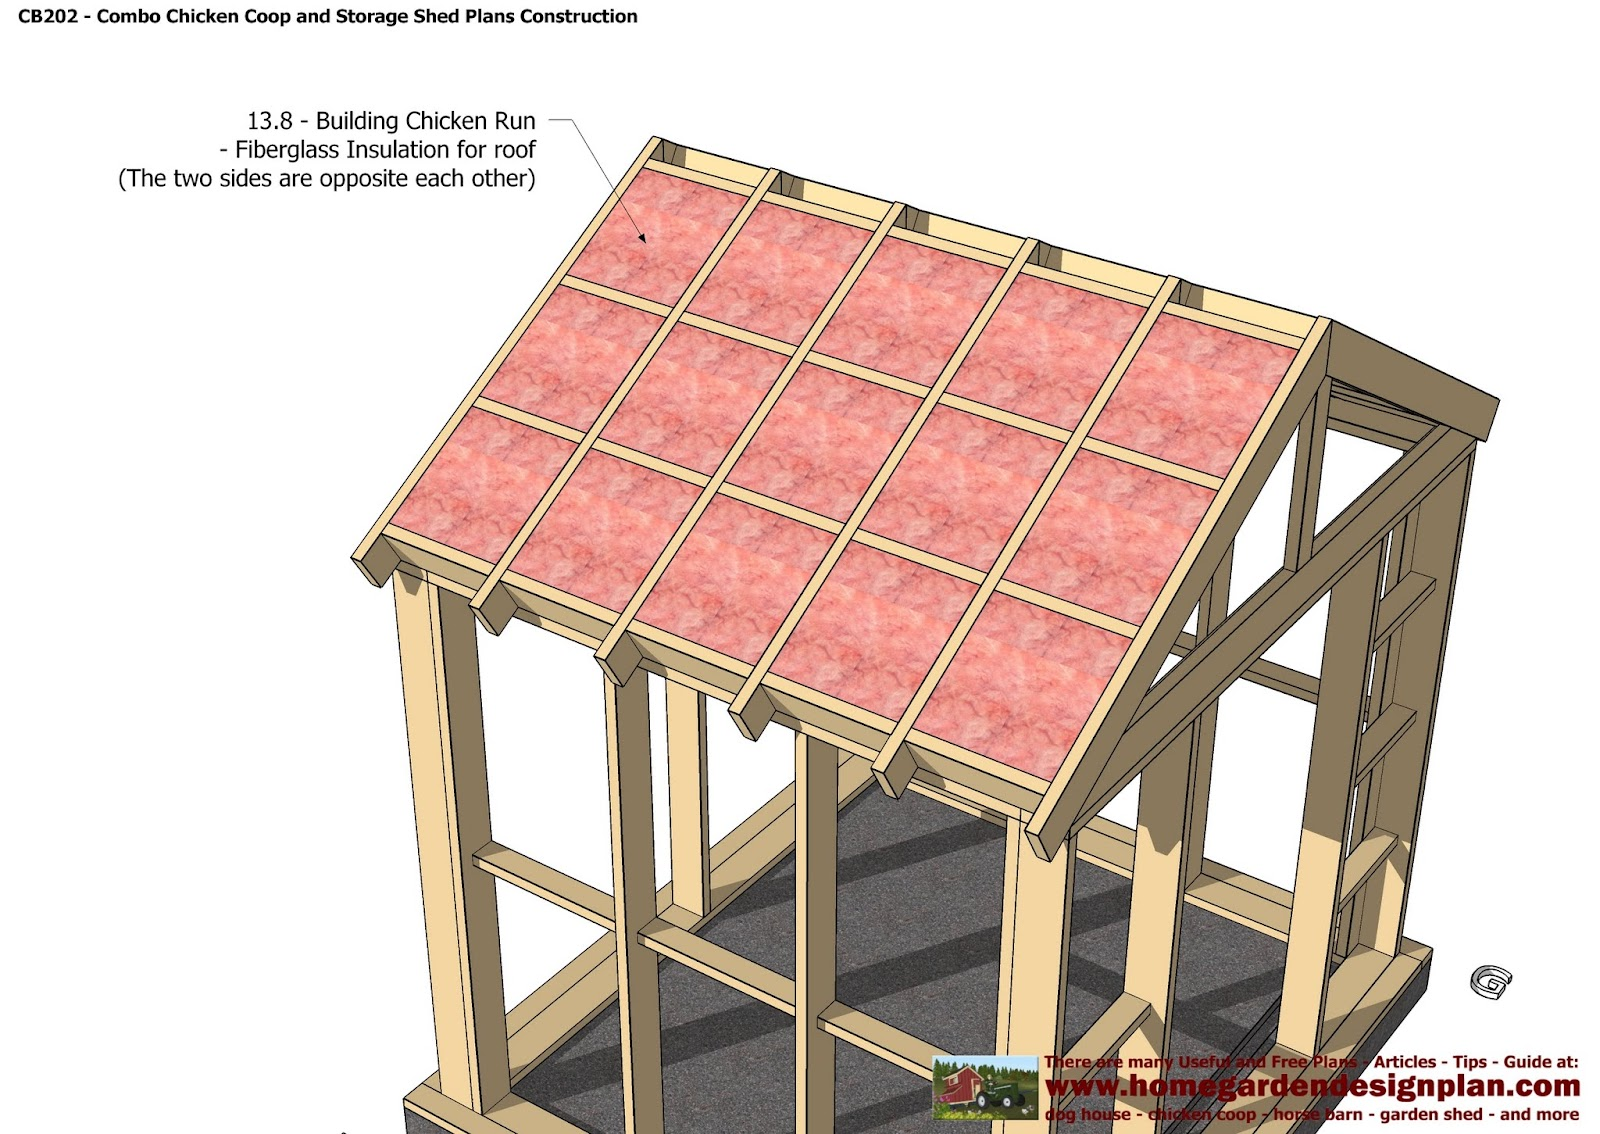 cb202 combo plans chicken coop plans construction